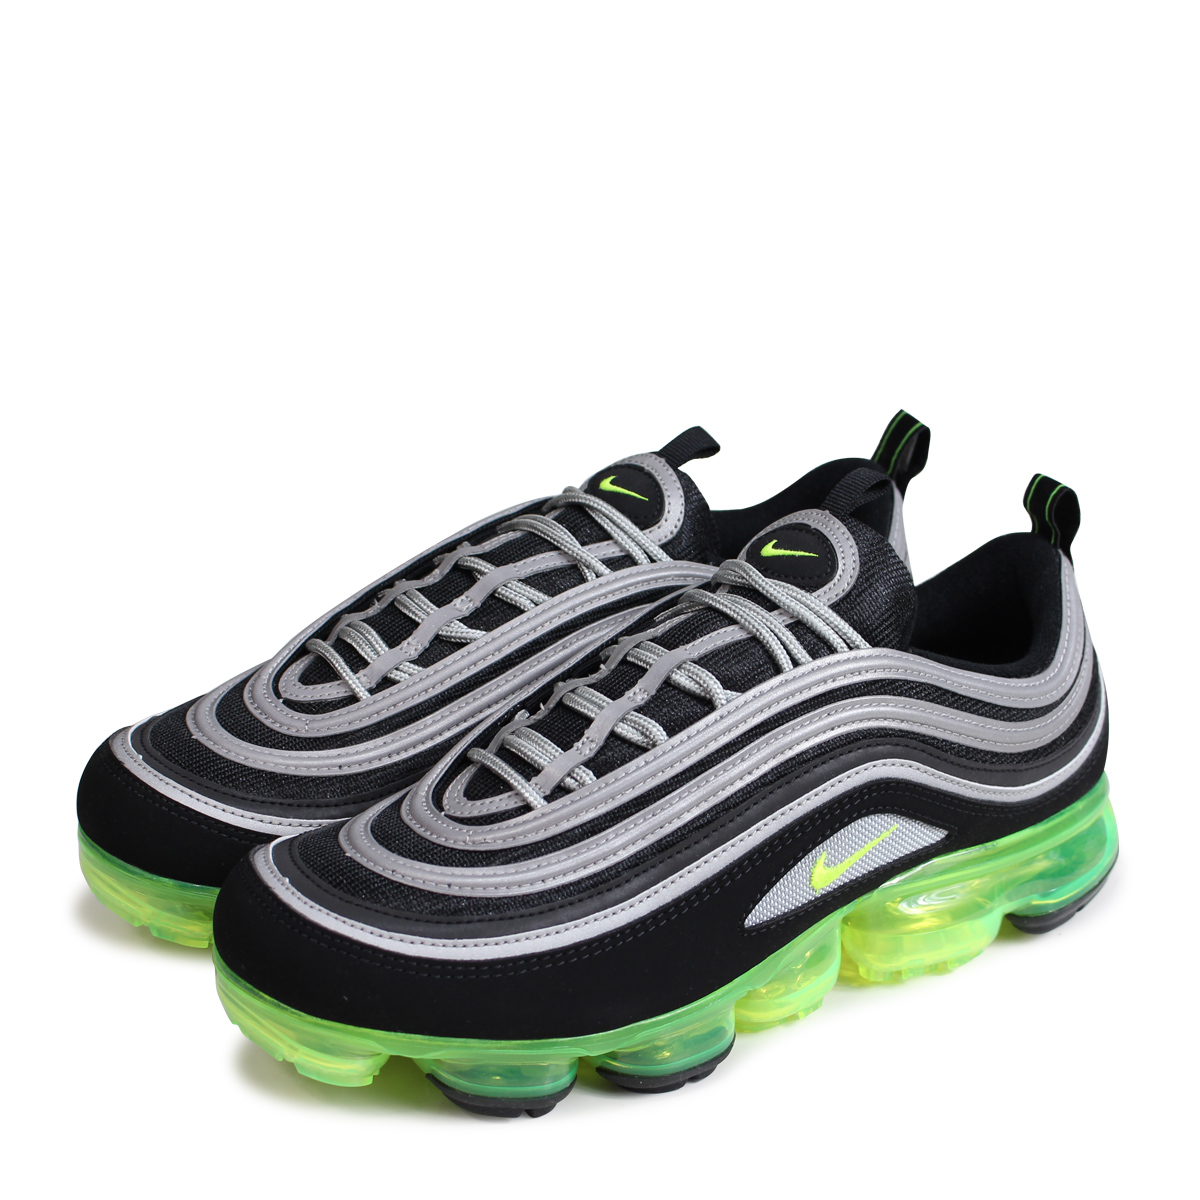 wholesale dealer 278eb 600b9 NIKE AIR VAPORMAX 97 Nike air vapor max 97 sneakers men AJ7291-001 neon  yellow [load planned Shinnyu load in reservation product 5/31 containing]  ...